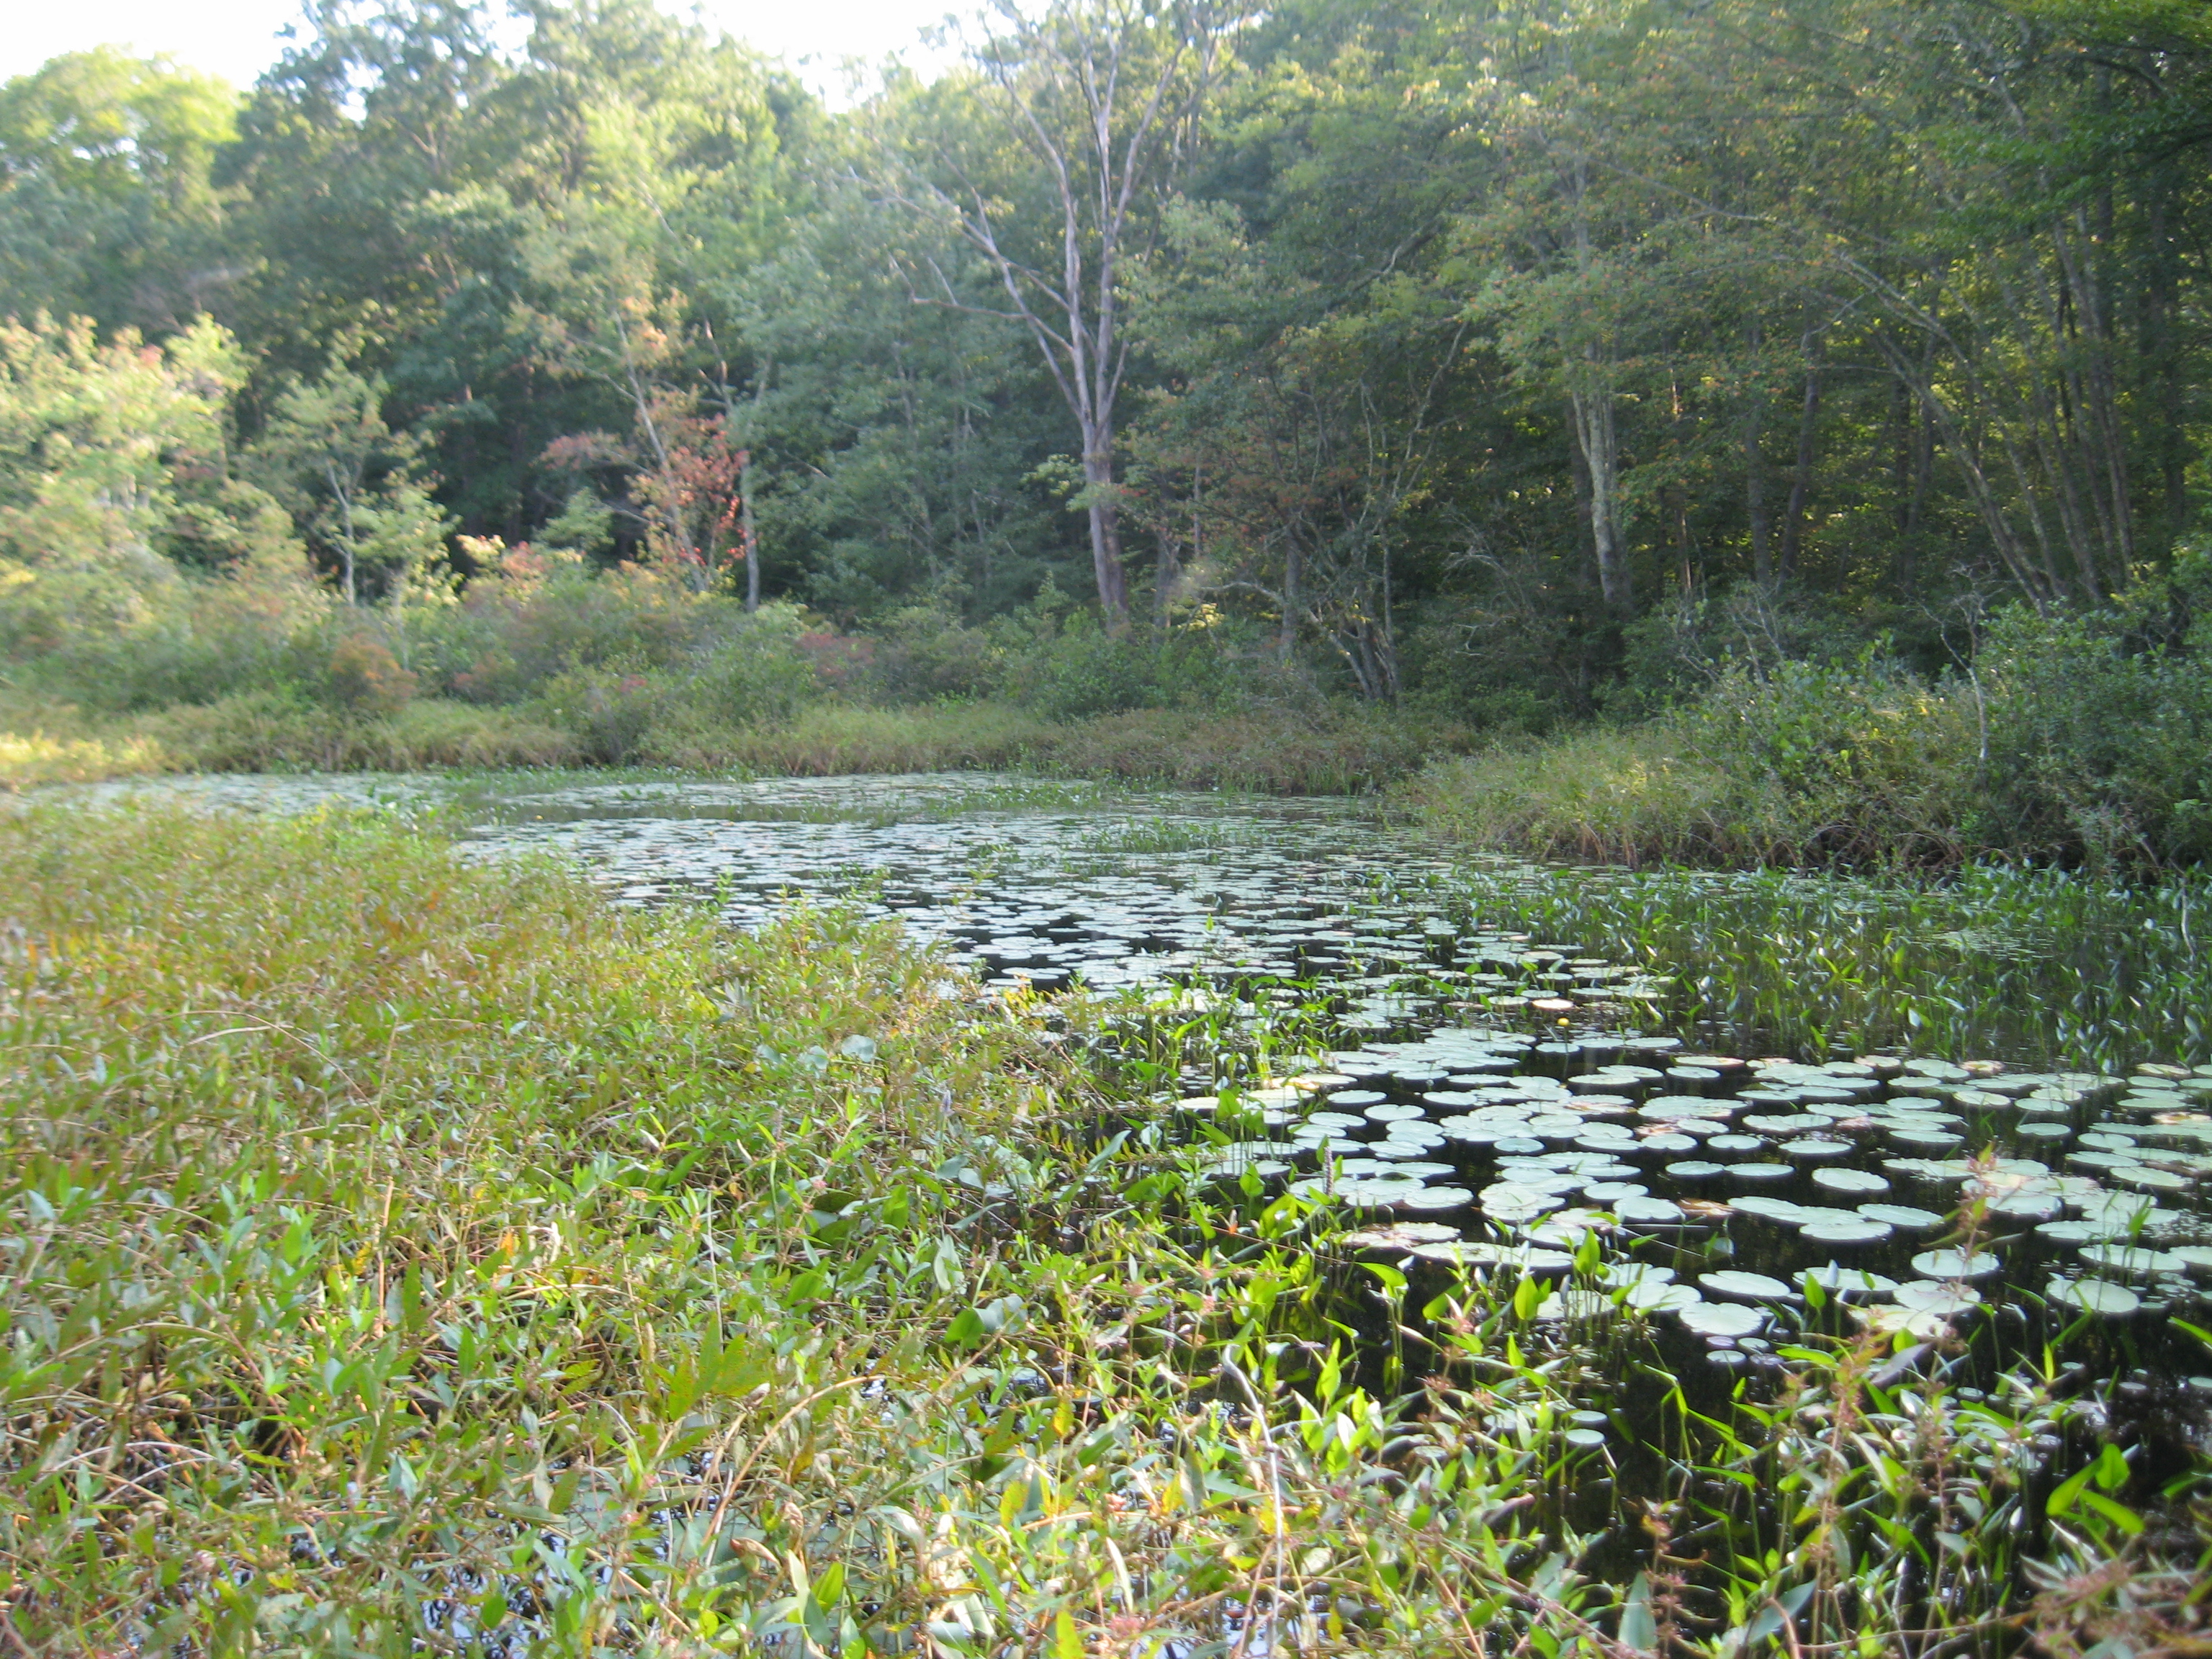 Wetlands in the Essex portion of the Preserve